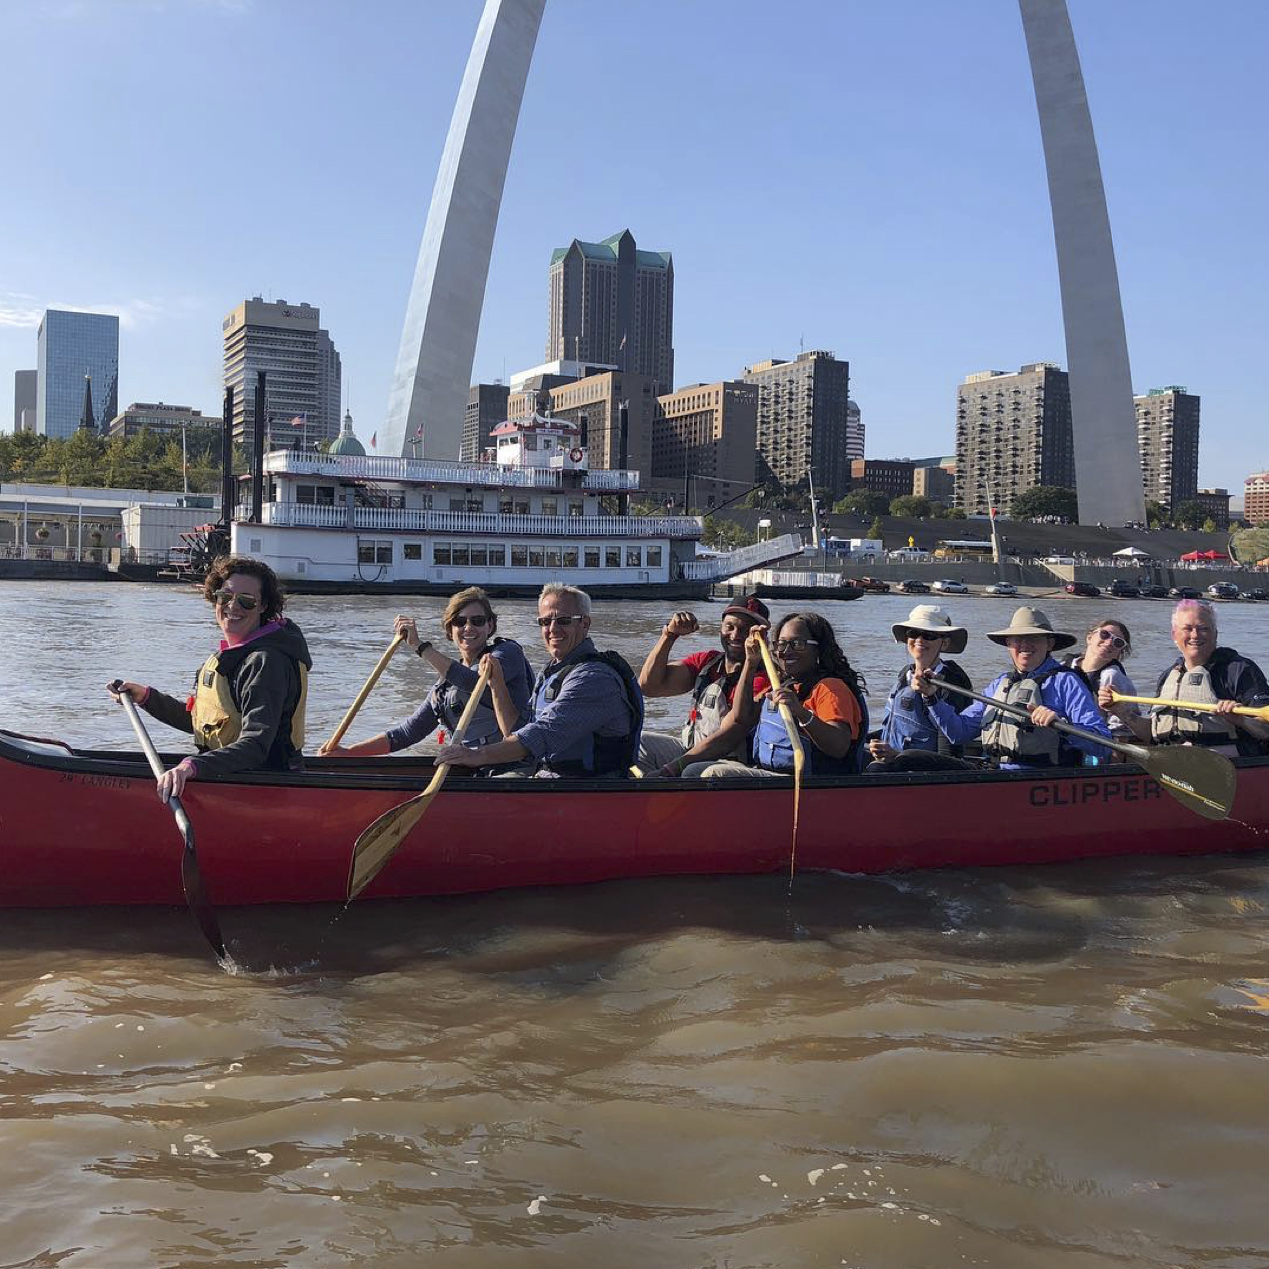 STL Riverfront Adventure - What better way to experience the Great River City than from the river! On this classic paddling trip you'll have the chance to explore nature on a pristine Mississippi River island, as well as catch some unique and incredible views of the downtown riverfront from one of our professionally guided voyageur canoes.